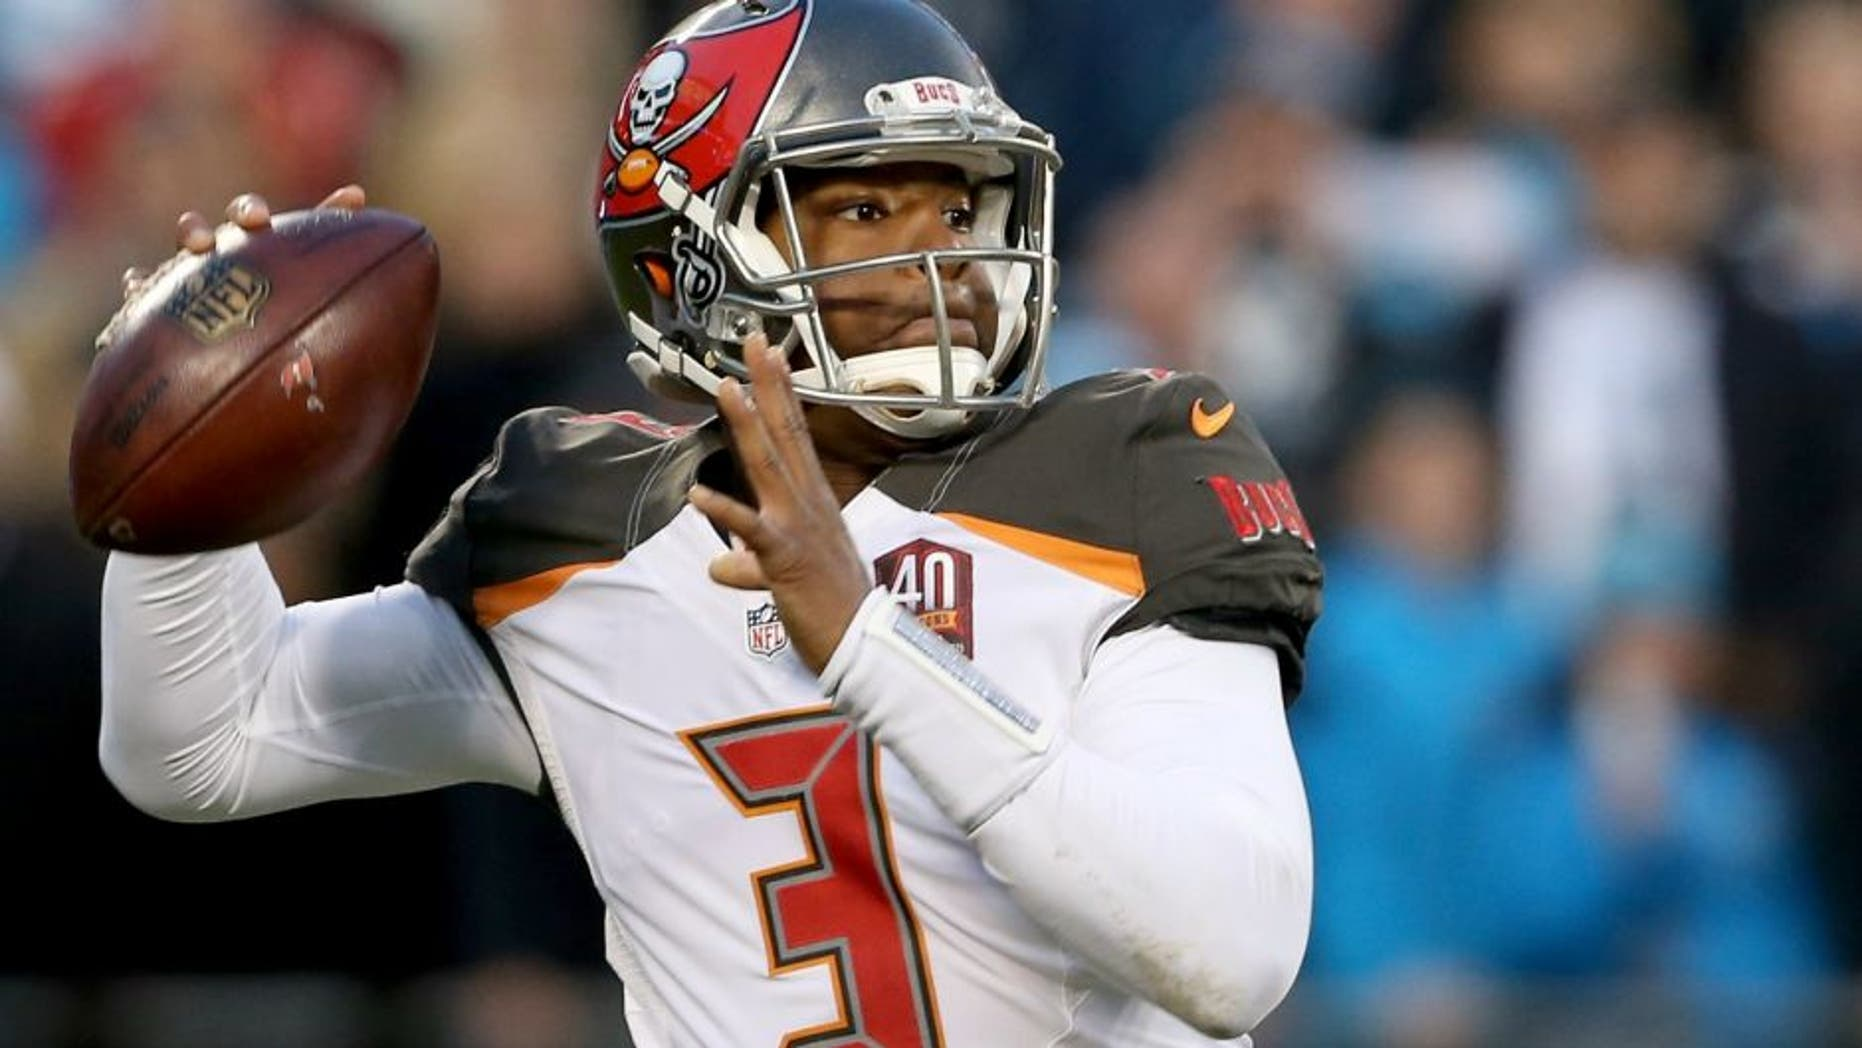 during their game at Bank of America Stadium on January 3, 2016 in Charlotte, North Carolina.,CHARLOTTE, NC - JANUARY 03: Jameis Winston #3 of the Tampa Bay Buccaneers during their game at Bank of America Stadium on January 3, 2016 in Charlotte, North Carolina. (Photo by Streeter Lecka/Getty Images)